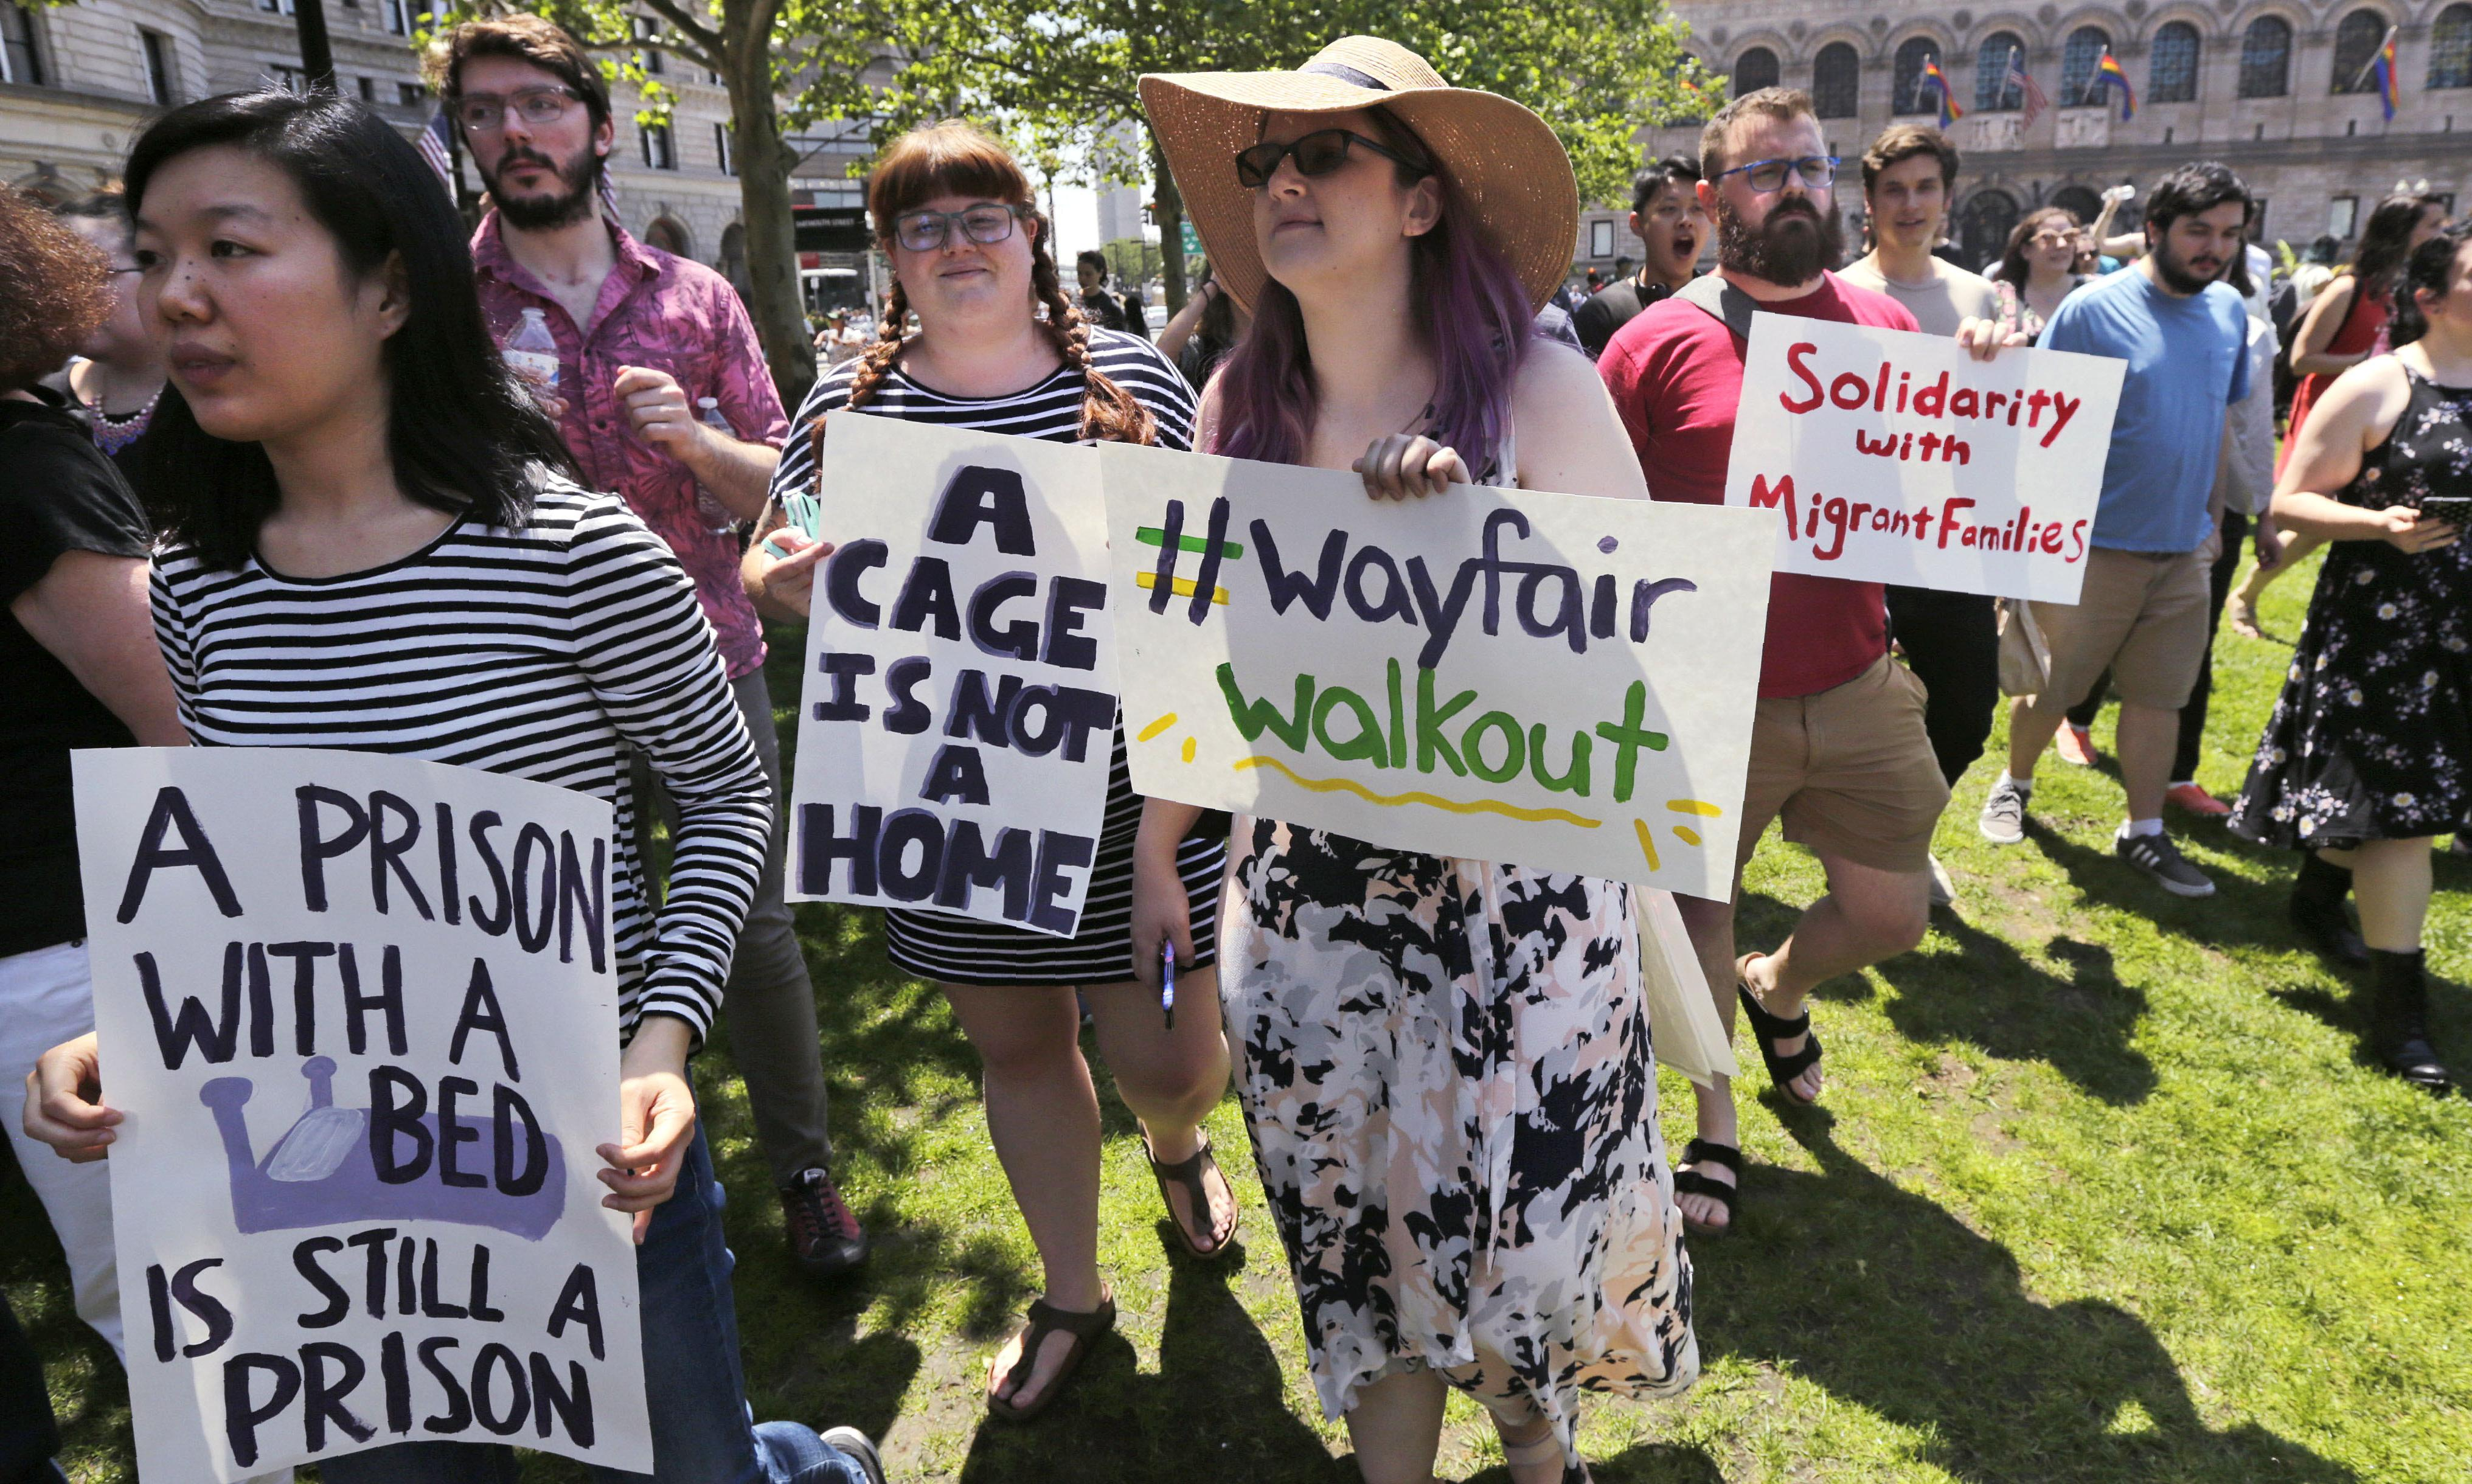 Wayfair employees walk out in protest over sales to migrant detention camps